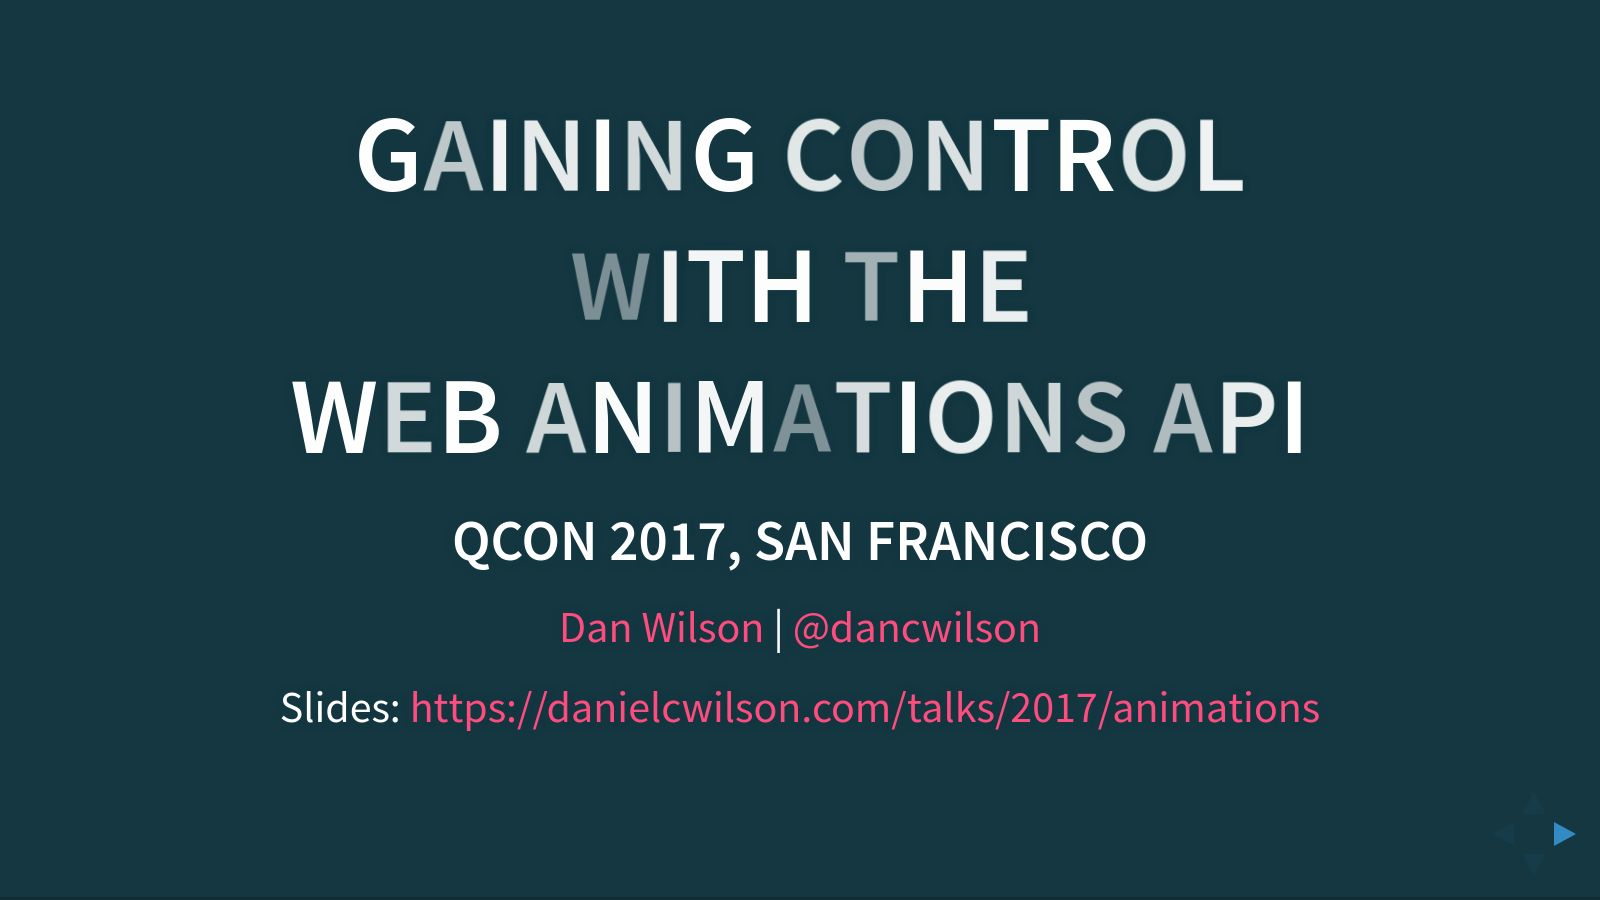 Gaining Control with the Web Animations API